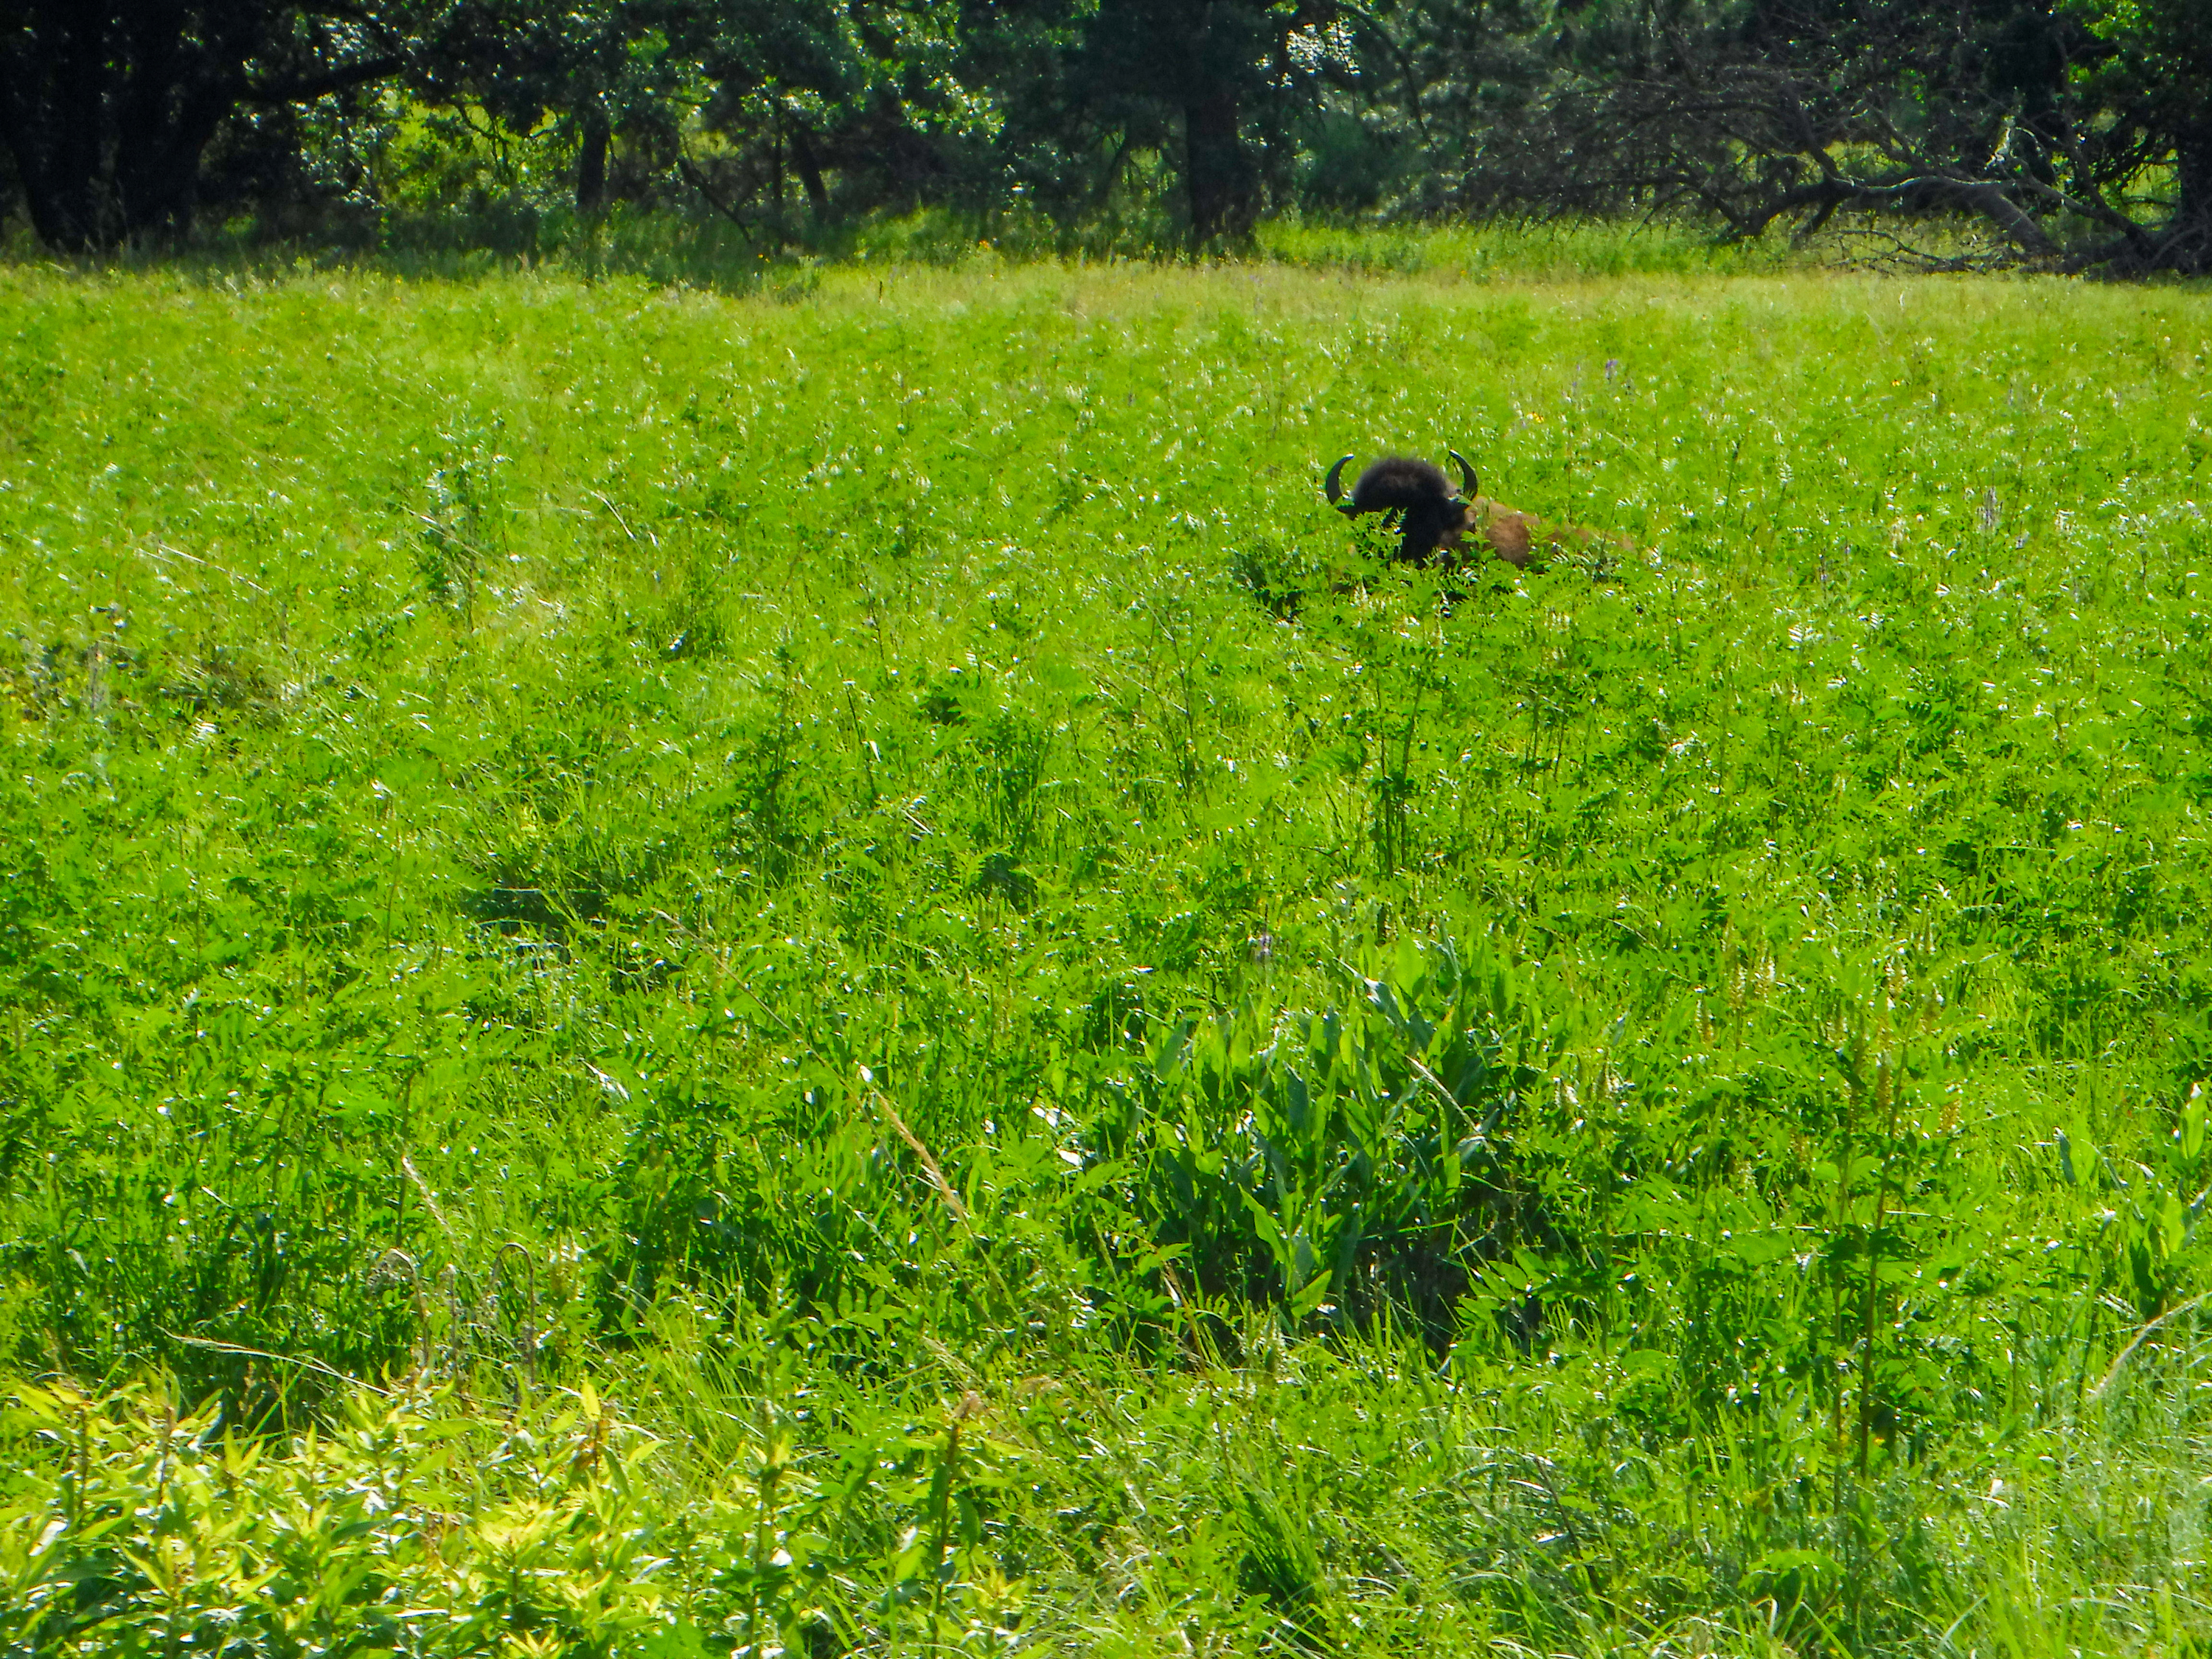 Bison in Tall Grass (photo credit: Nate)